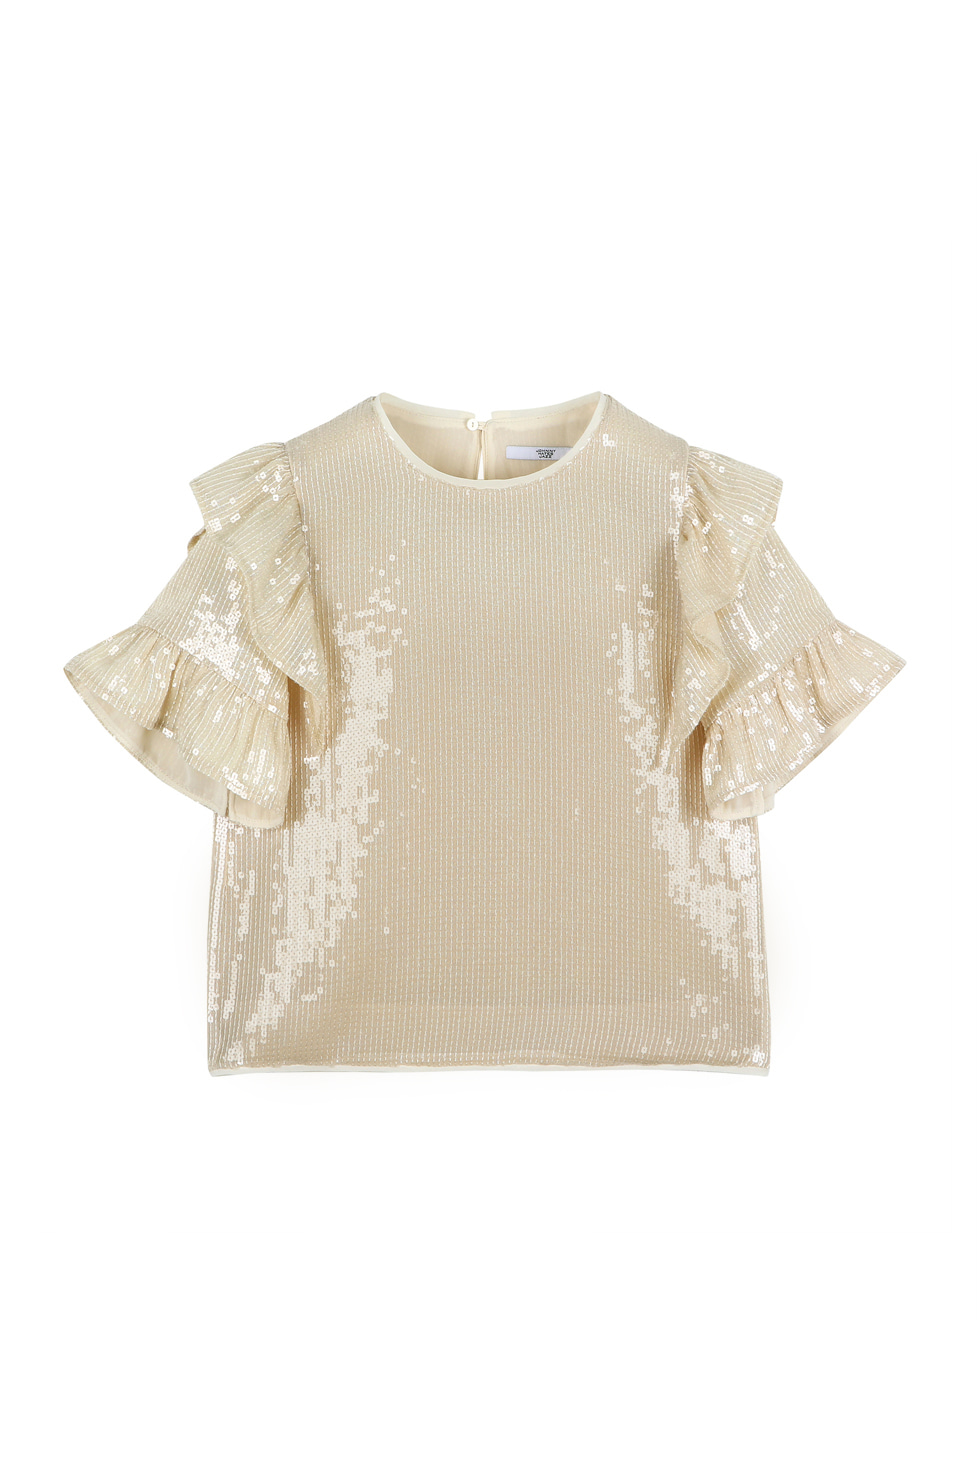 SEQUINED RUFFLE BLOUSE - IVORY